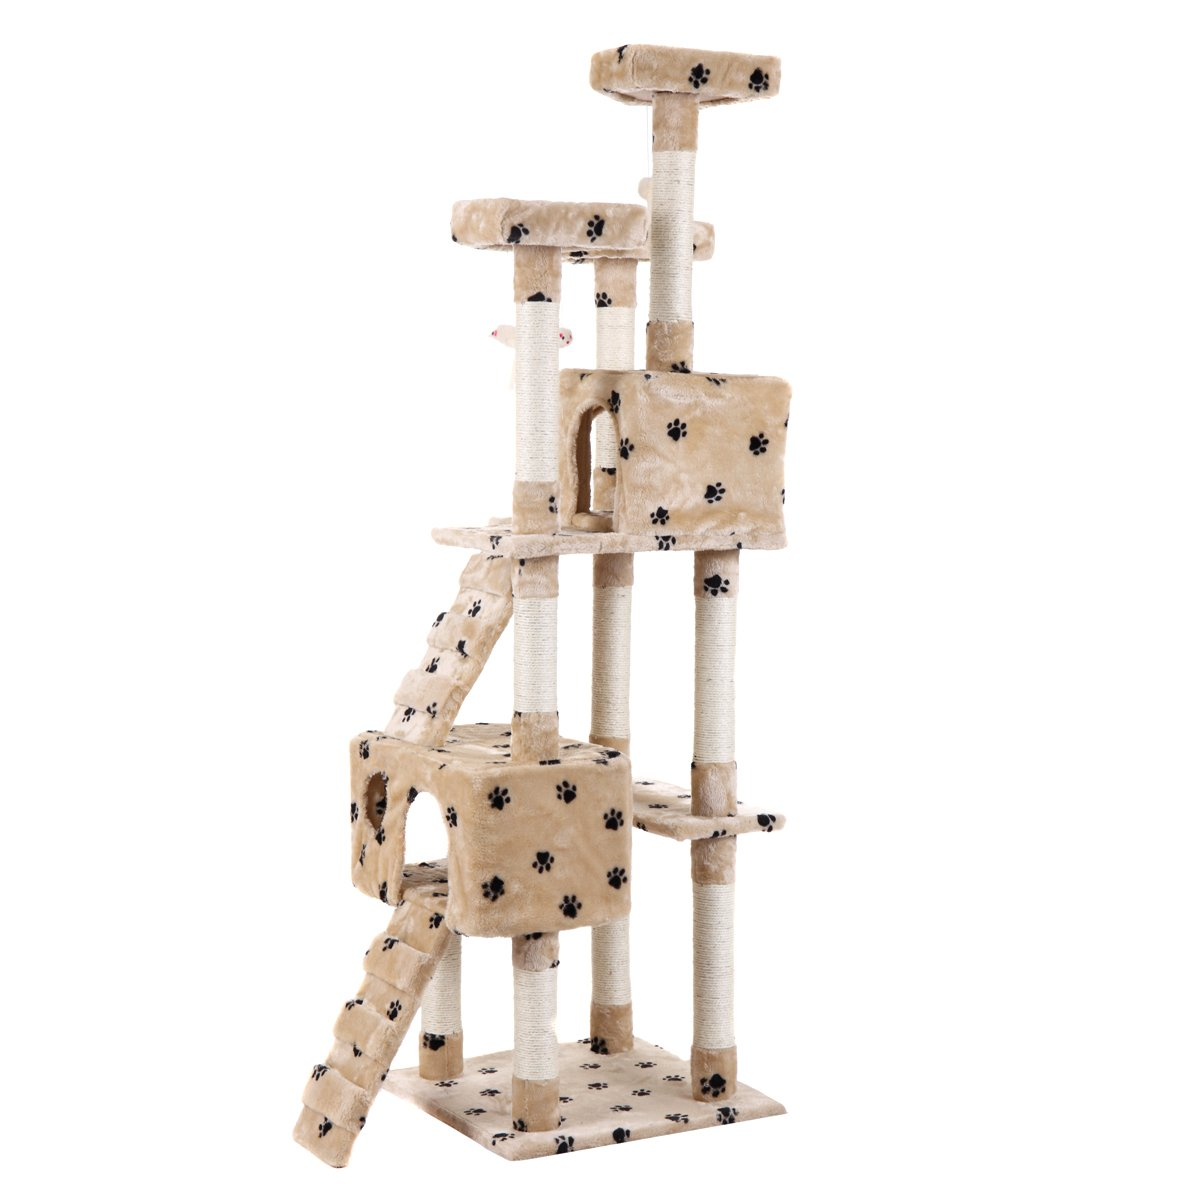 LAZYMOON 67'' Cat Tree 4-Tier Tower Condo Play House Furniture w/ Scratching posts and Toy Mouse Beige with Footprint by LAZYMOON (Image #4)